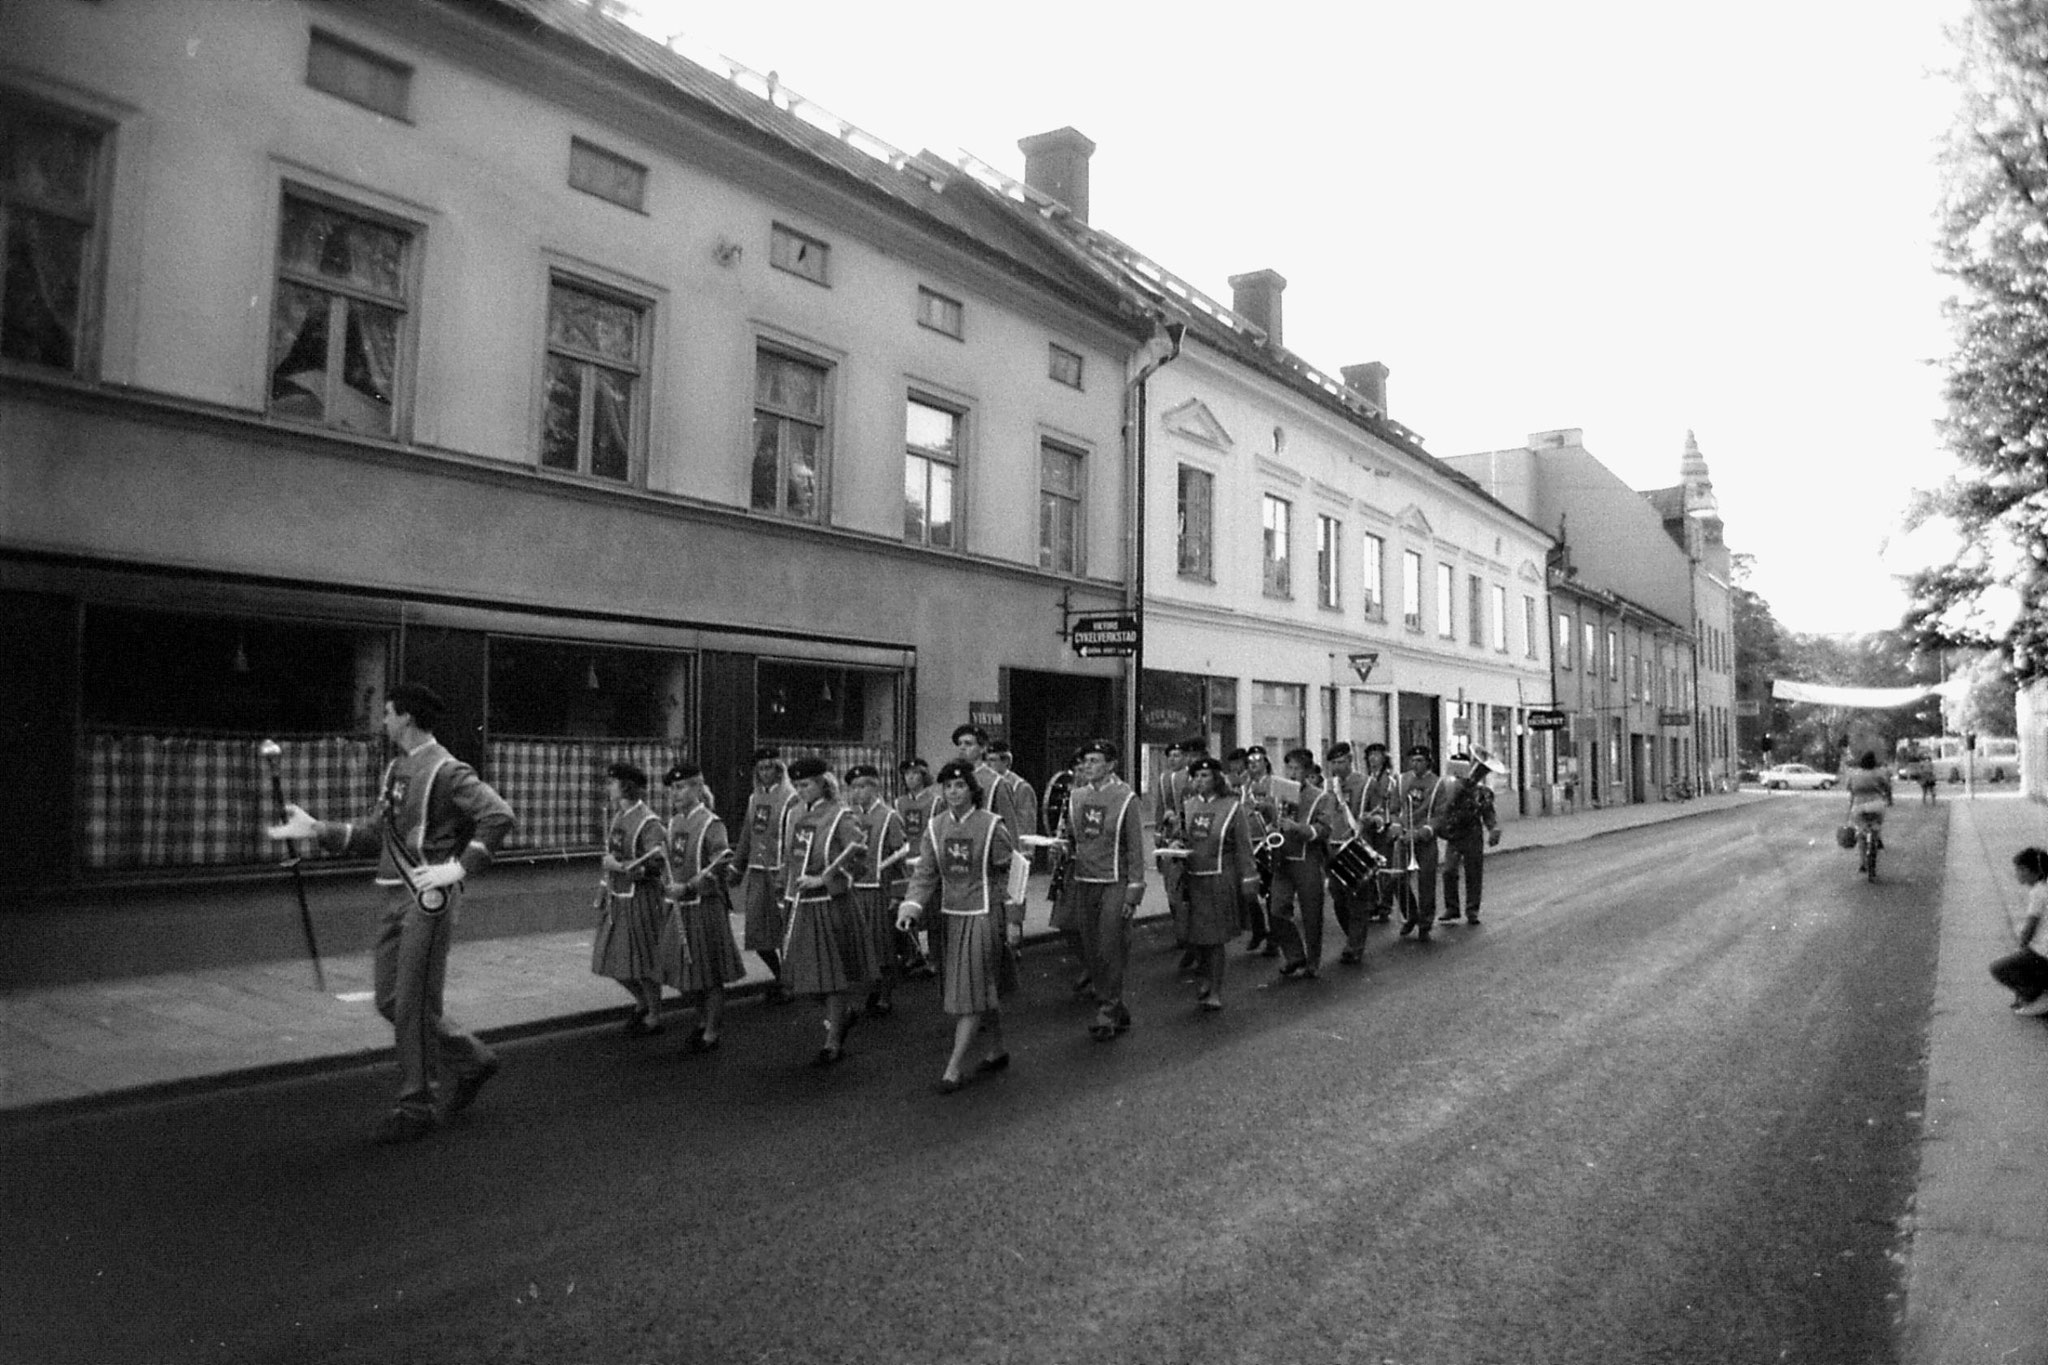 9/9/1988: 5: Uppsala marching band